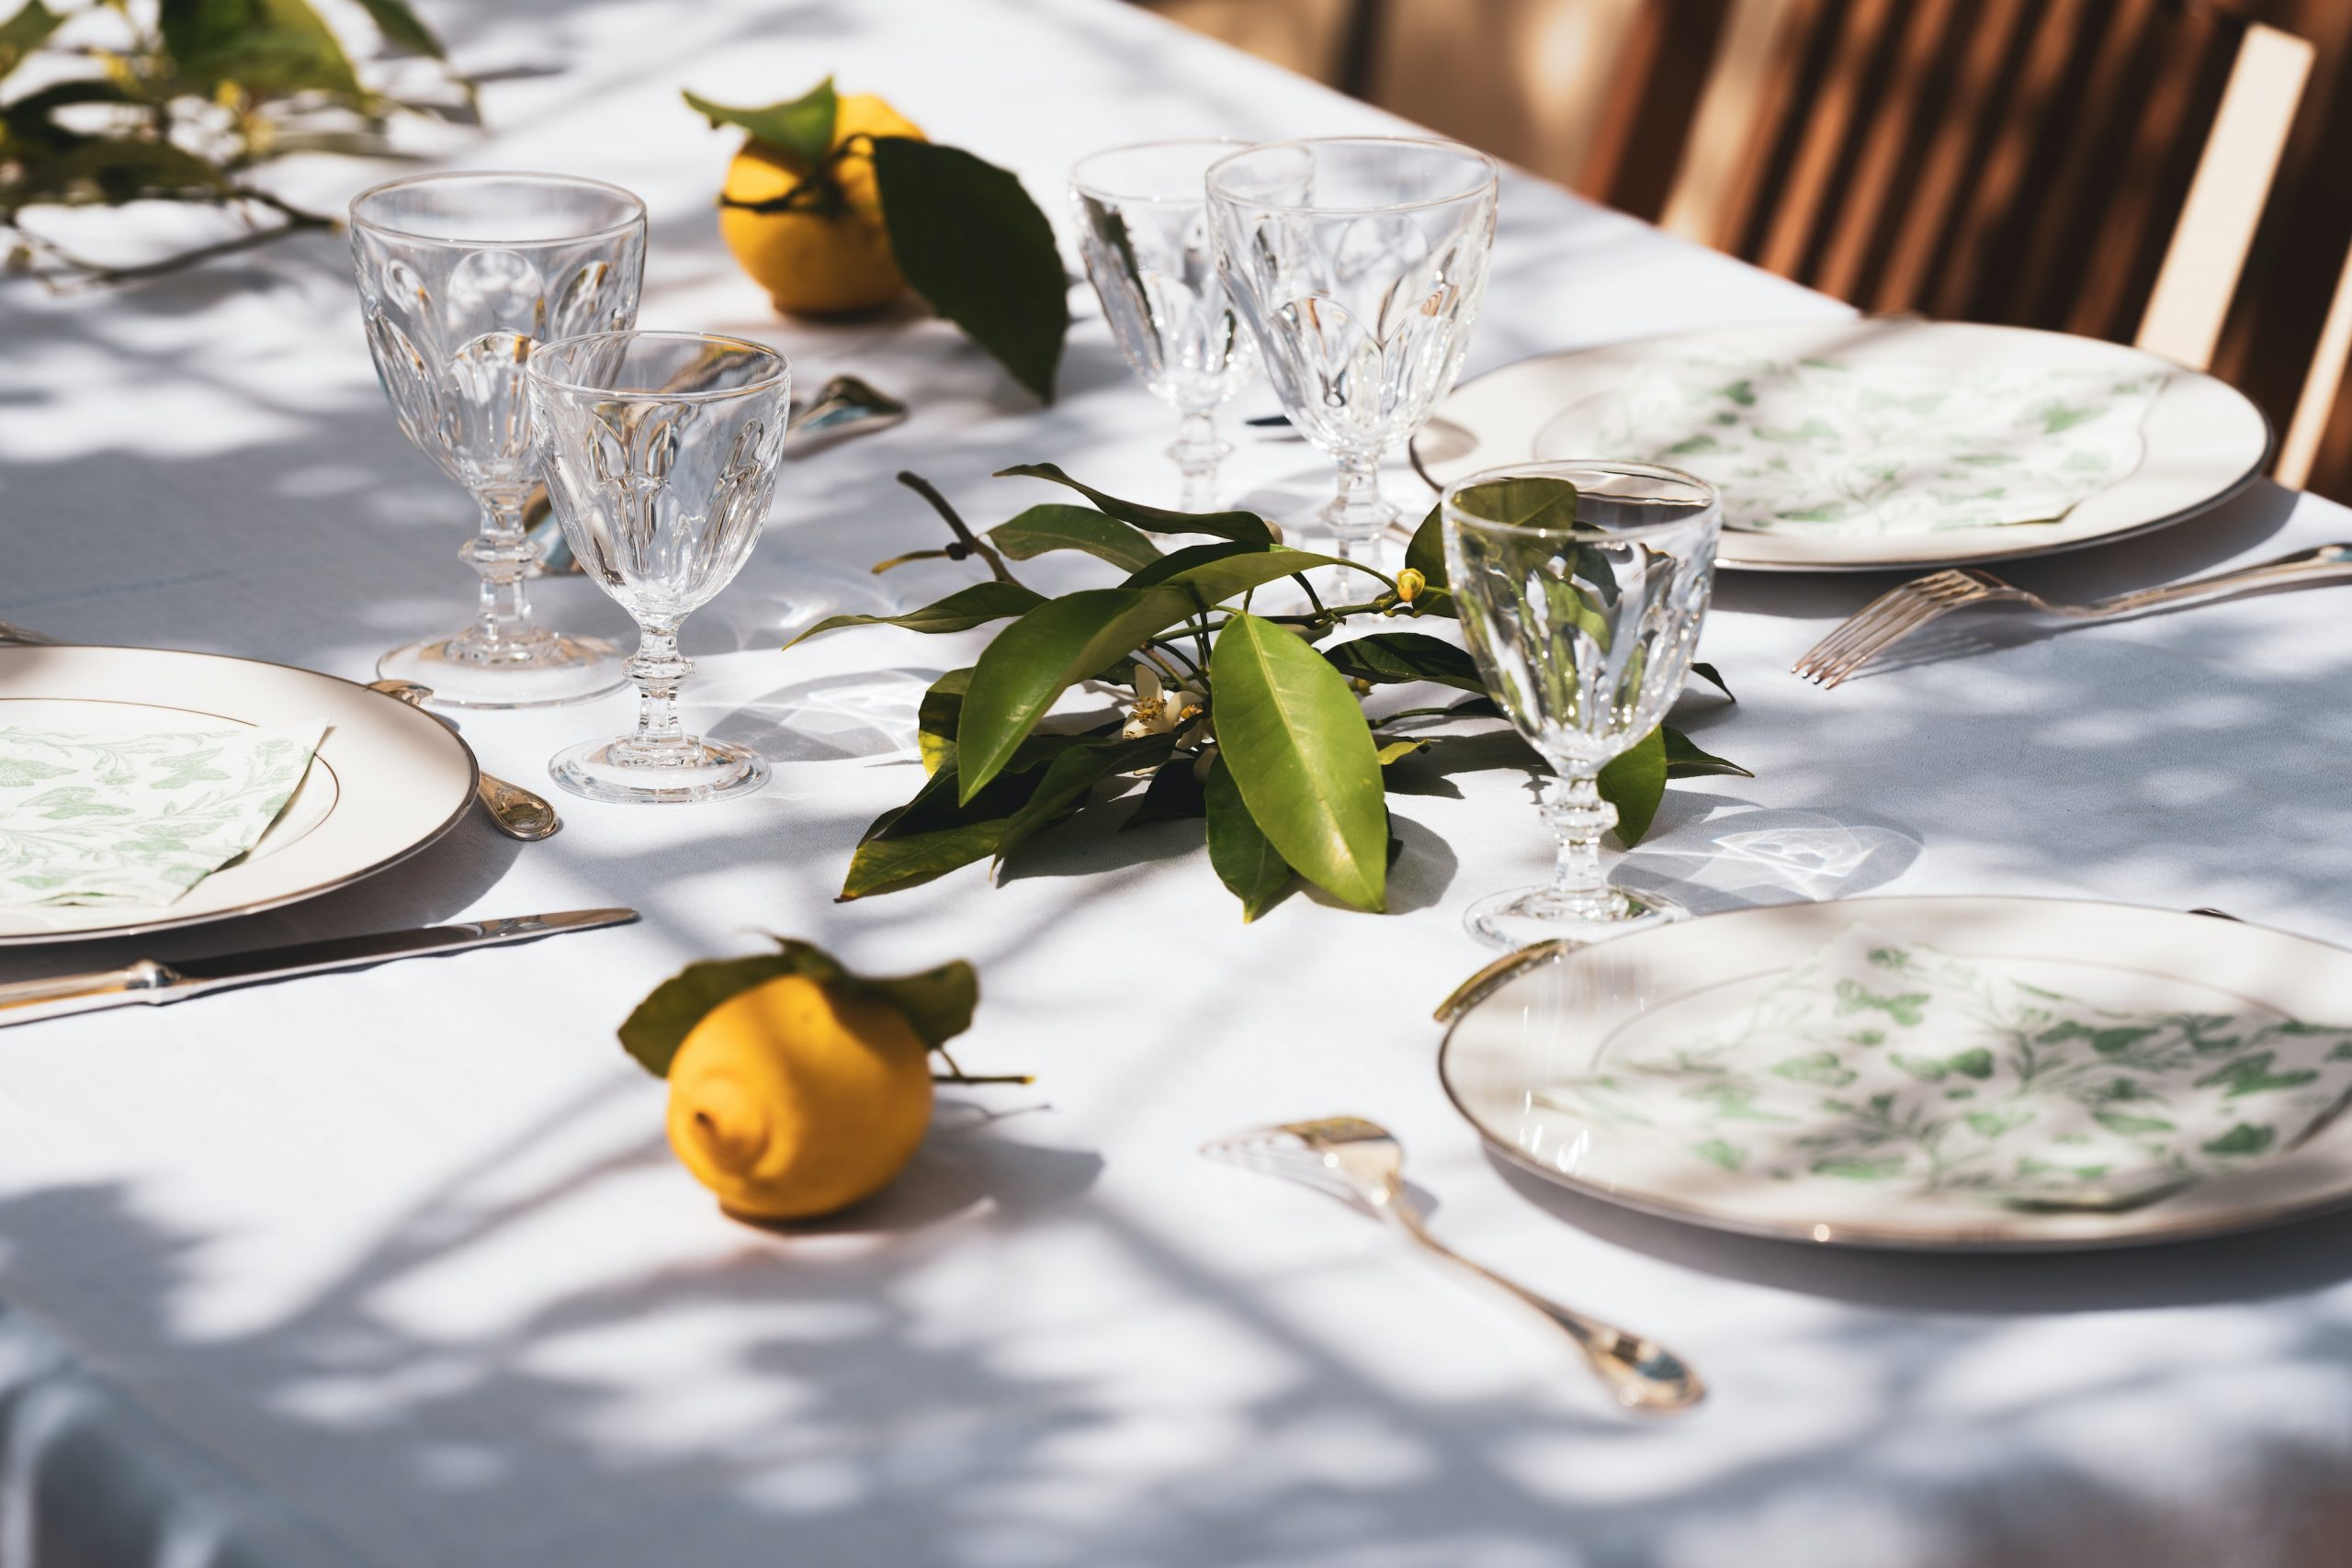 5 Top Tips To Create A Stylish Outdoor Summer Table Setting